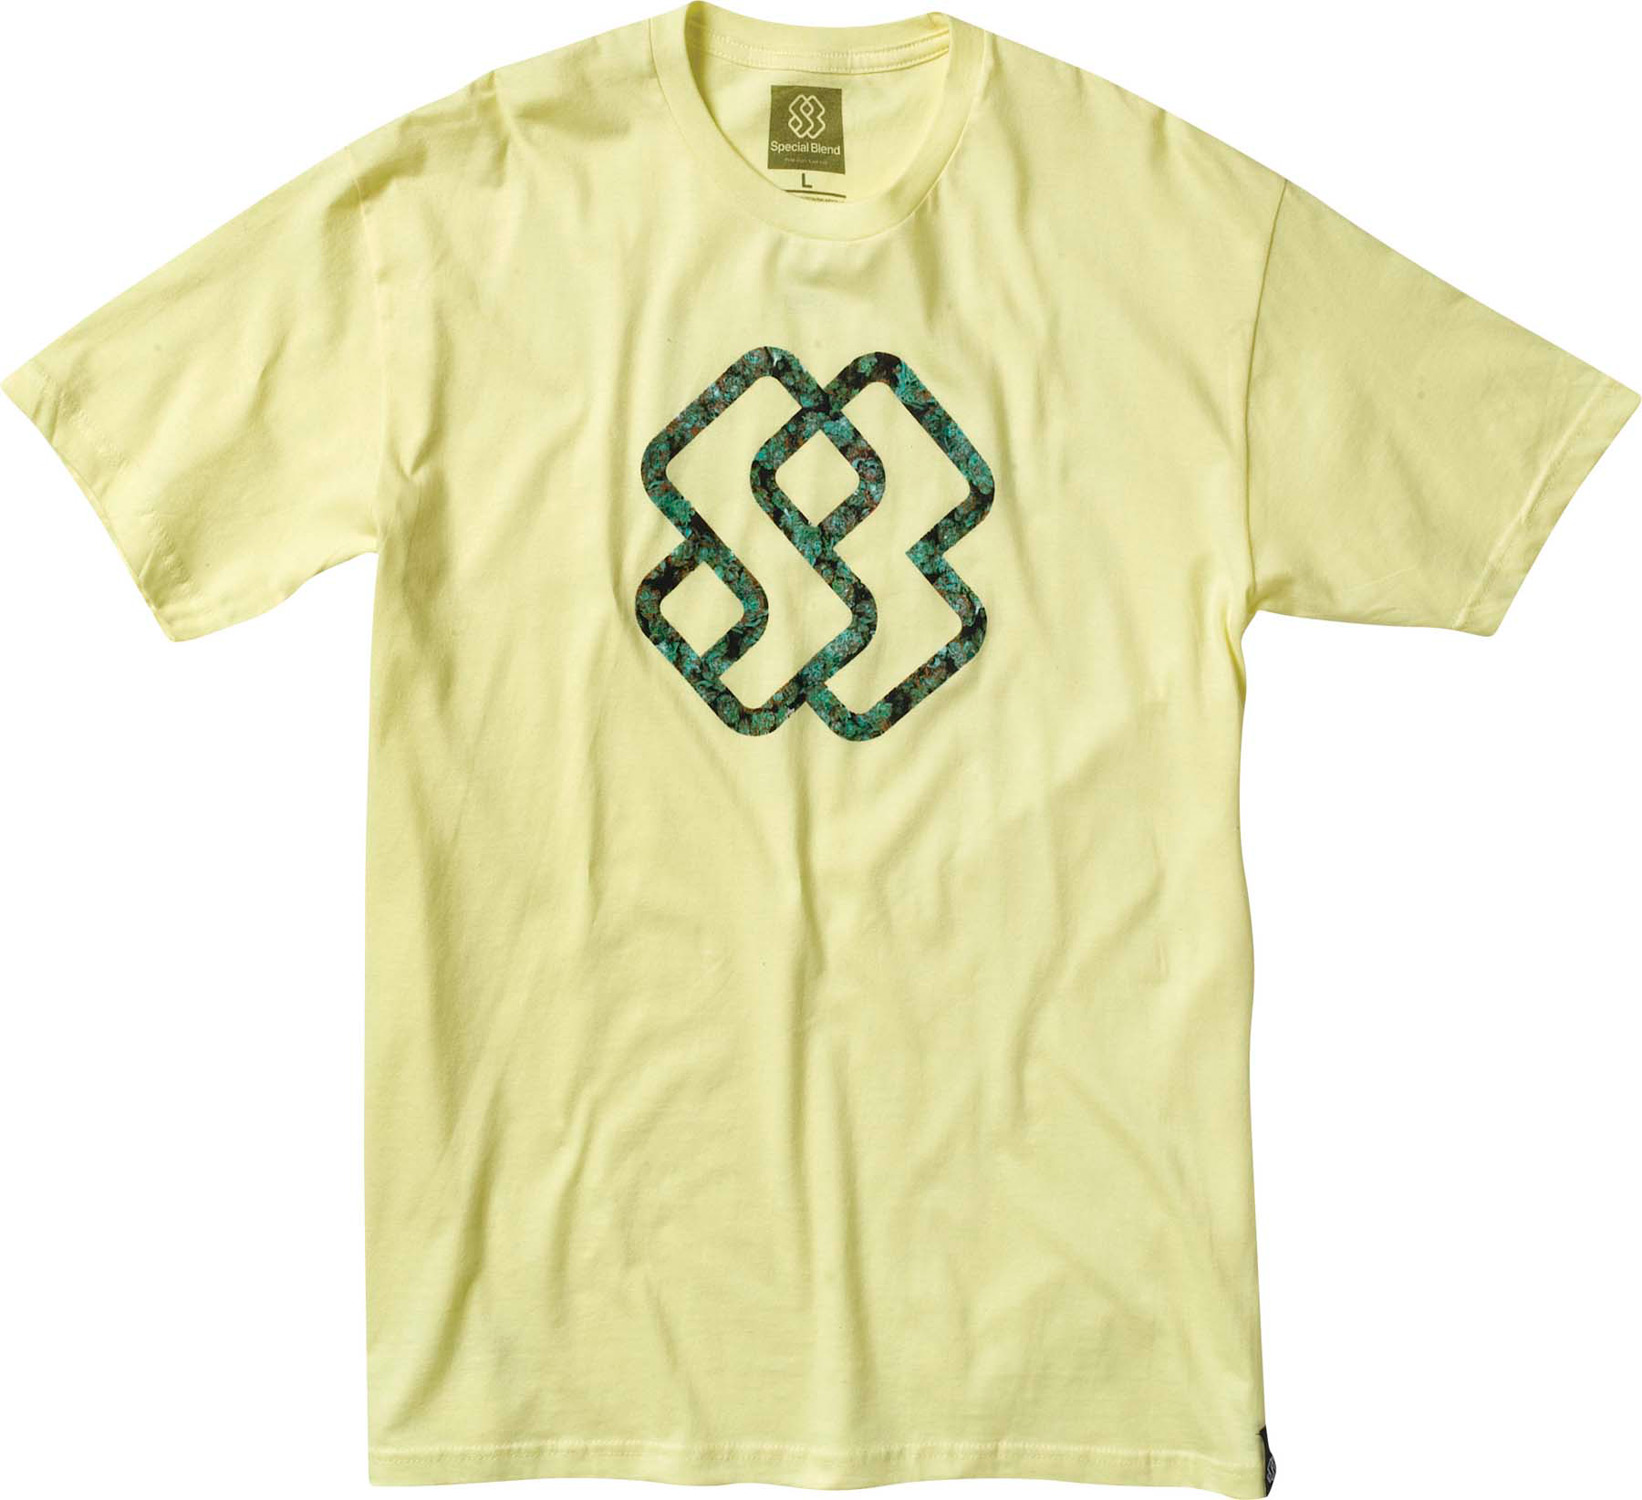 Be the first of your friends to get your hands on the Special Blend Line Up T-Shirt.  This shirt made of 4.6 oz of 100% ring spun tubular cotton.  A feature of the t-shirt is its screenprint art.  The Line Up T-Shirt is short sleeved and crew necked.  The Special Blend shirt comes with a 30-day manufacturer warranty.Key Features of The Special Blend Line Up T-Shirt:  Regular Fit  Crew Neck  Short Sleeve  Short sleeve tee   Freedom fit  100% ringspun tubular cotton, 4.6oz  Screenprint art - $10.95